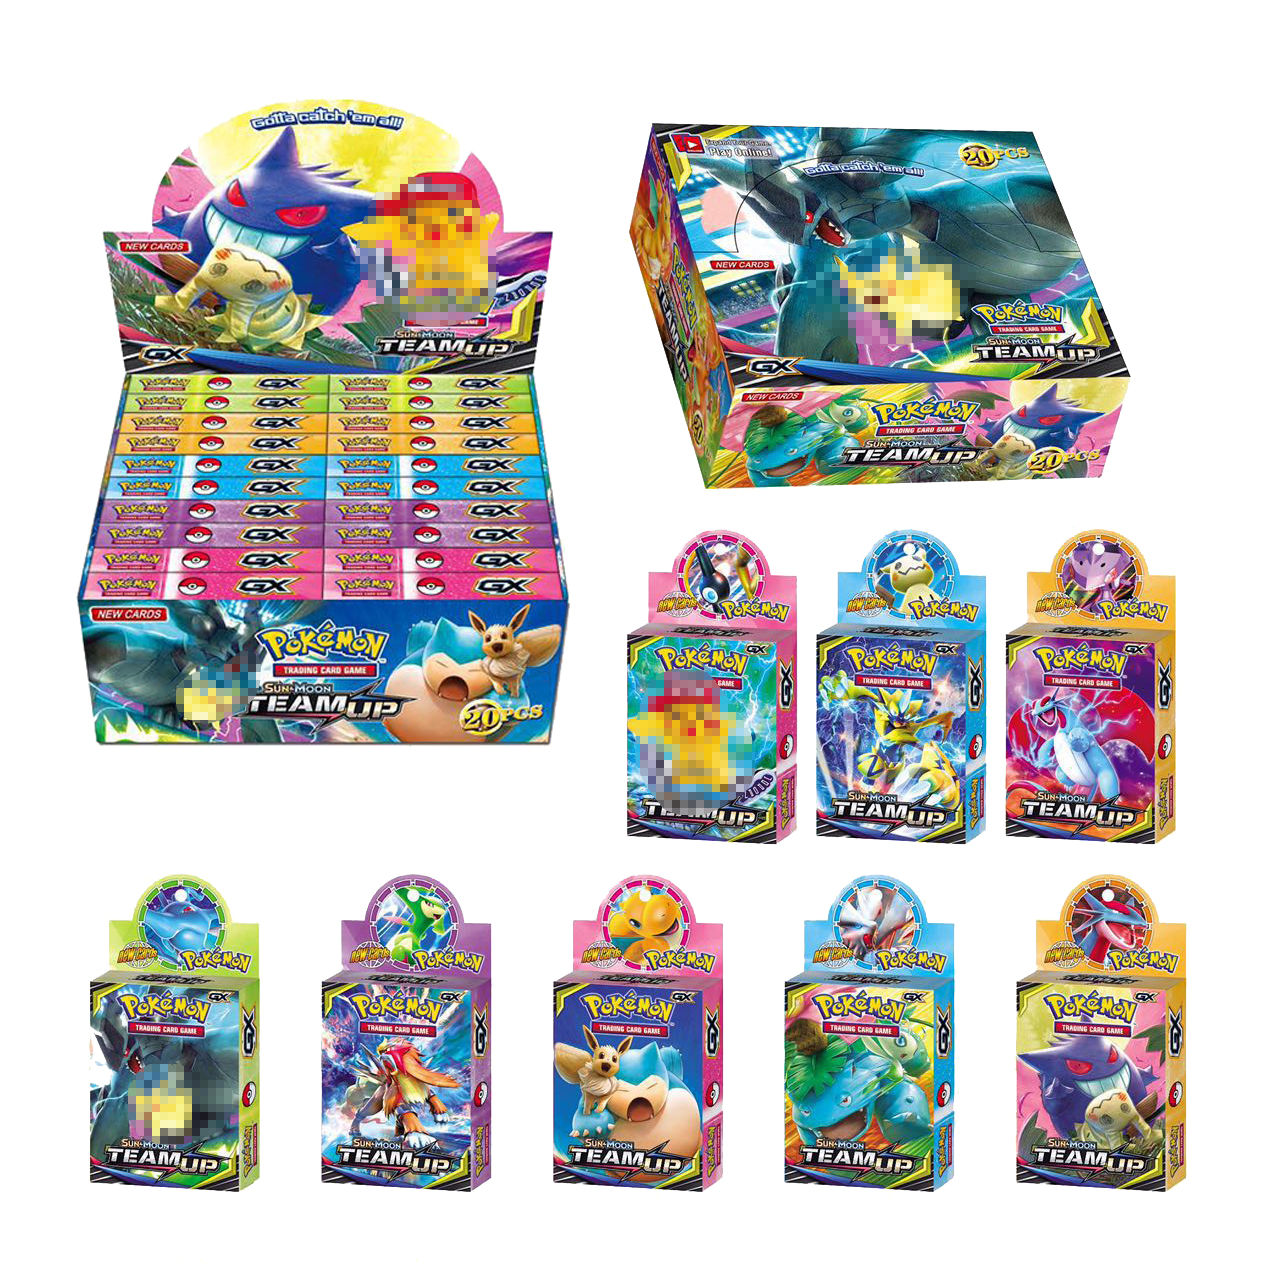 Takara Tomy PTCG Pokemon Cards 33PCS GX EX MEGA Flash Card Sword Shield Sun Moon Card Collectible Gift Children Toy image